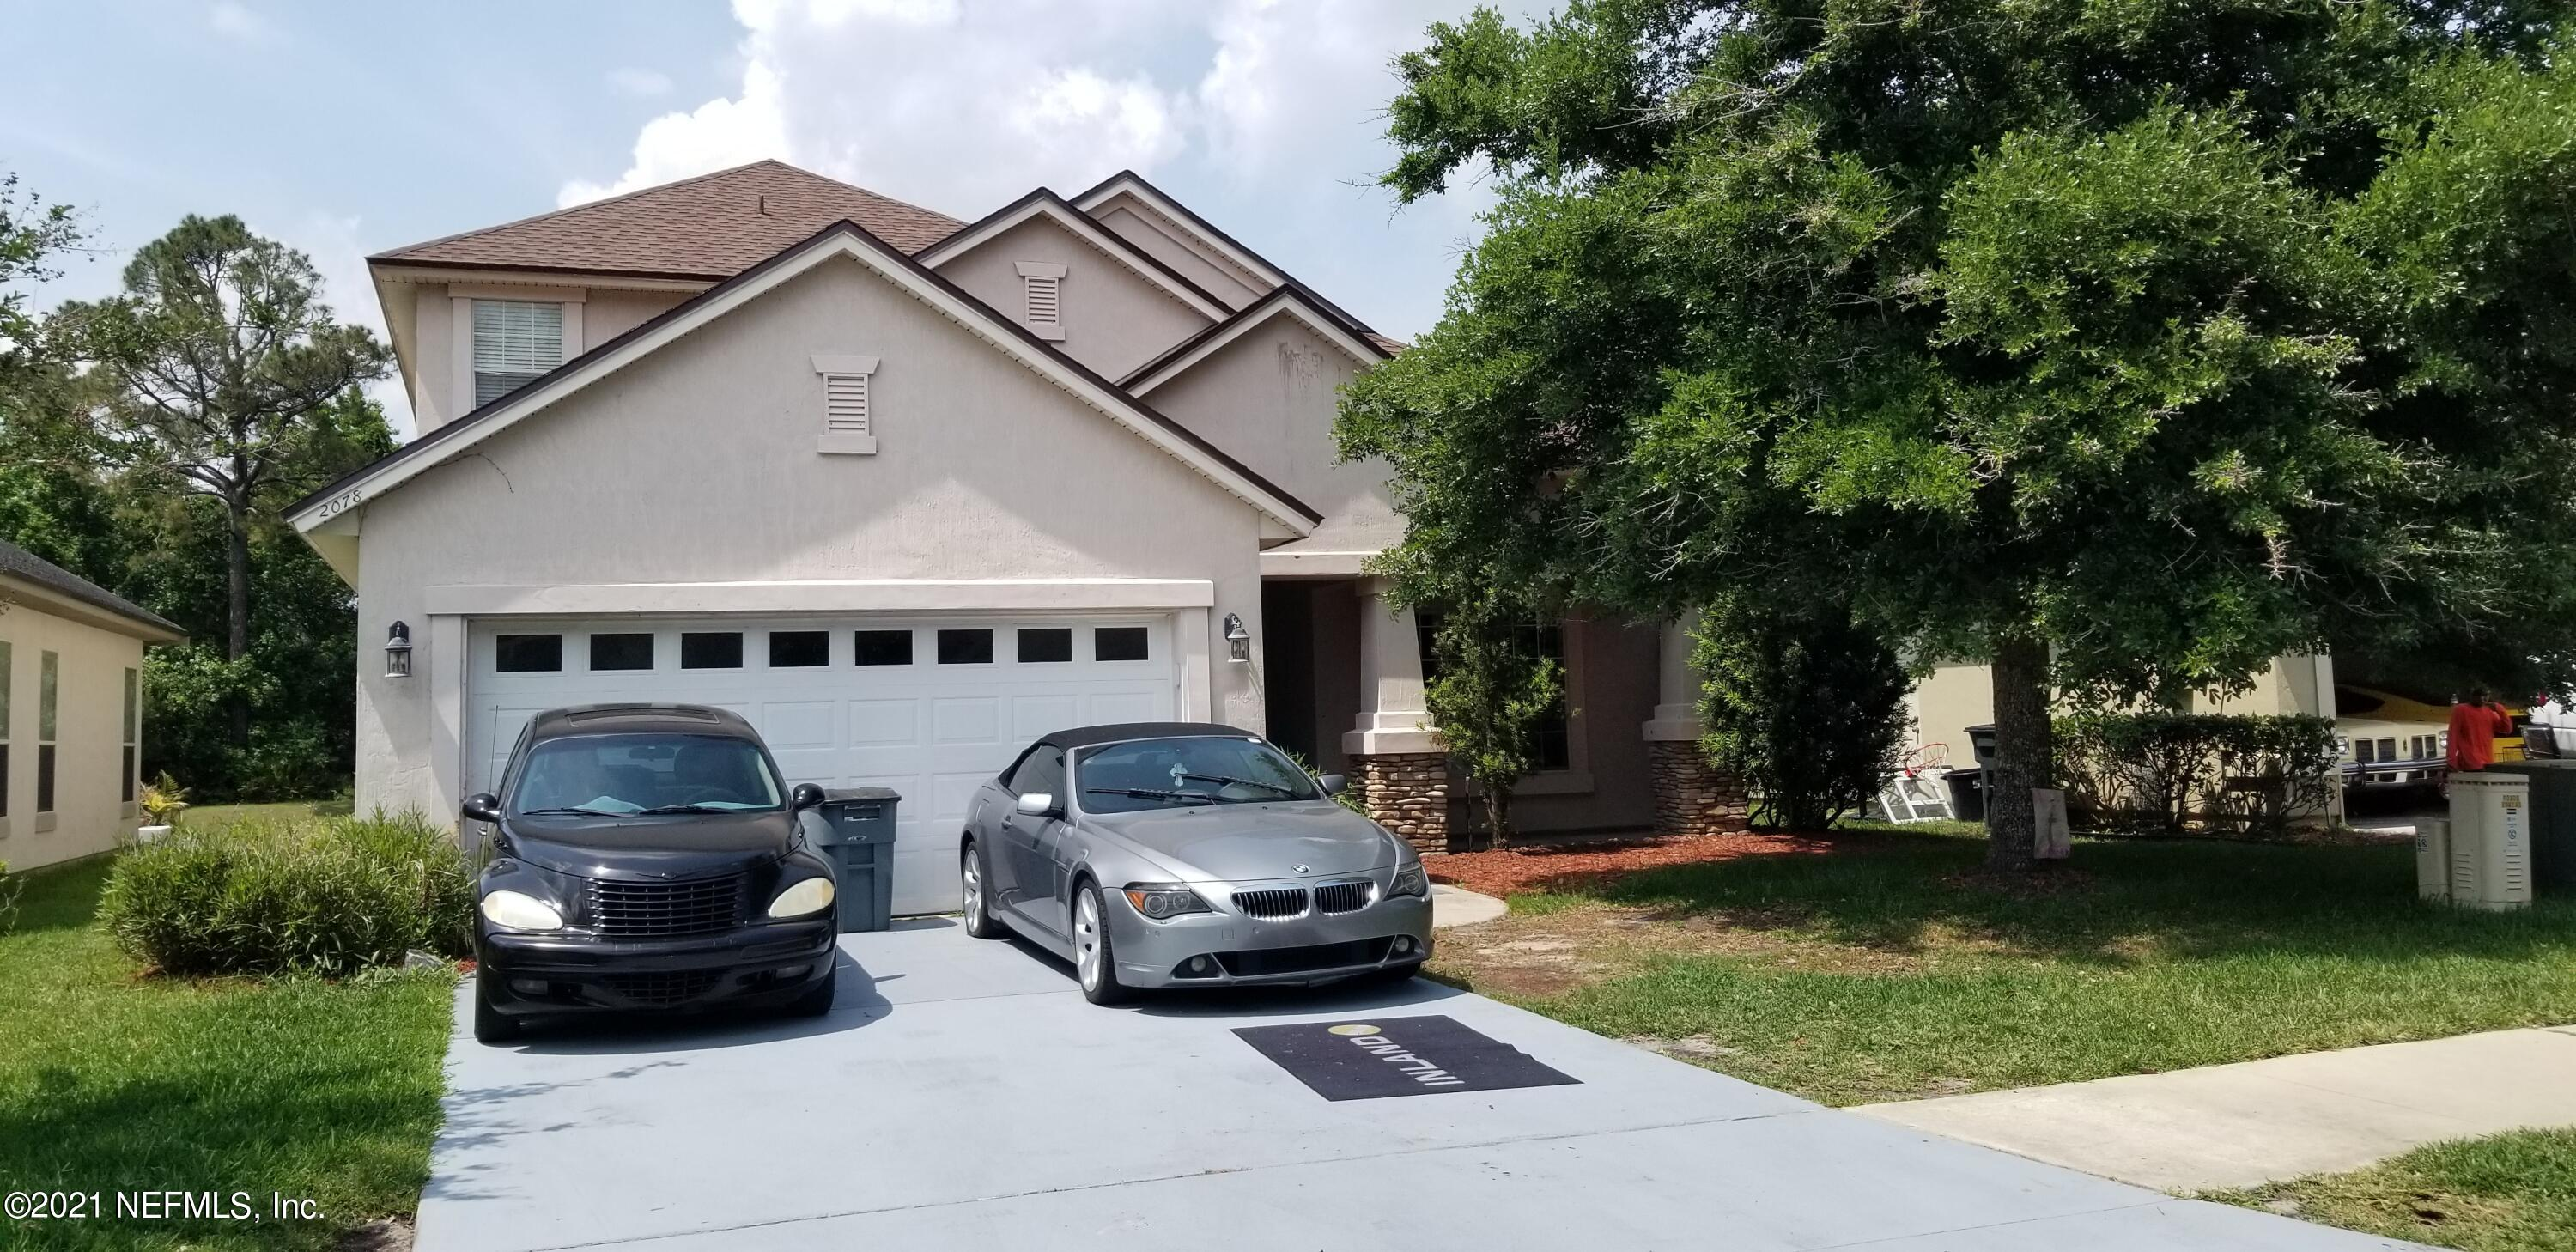 2078 HERITAGE OAKS, ORANGE PARK, FLORIDA 32003, 3 Bedrooms Bedrooms, ,2 BathroomsBathrooms,Residential,For sale,HERITAGE OAKS,1108585